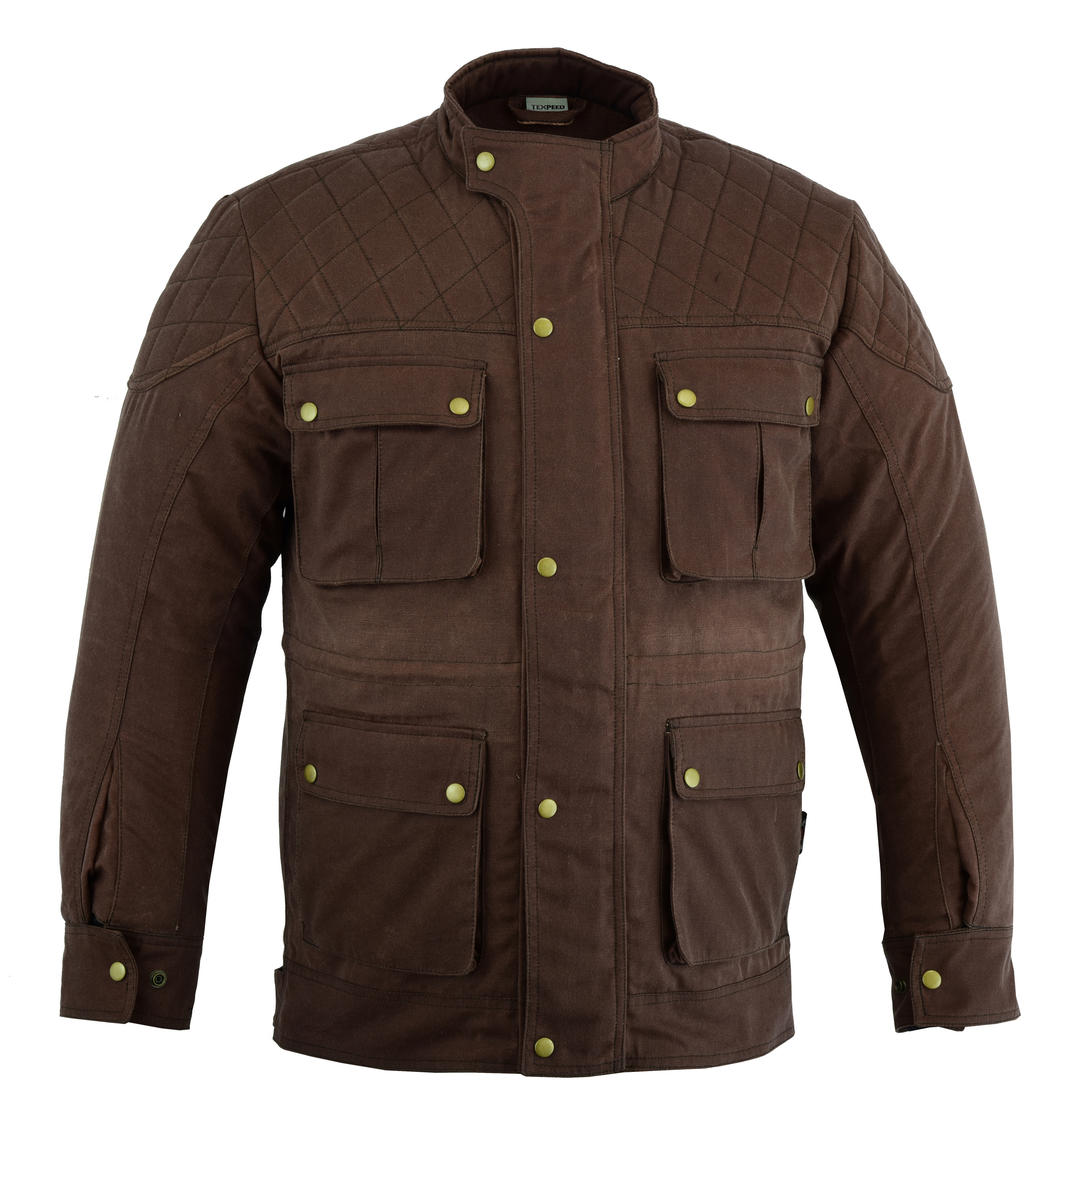 Texpeed Brown Waxed Diamond Cut Jacket